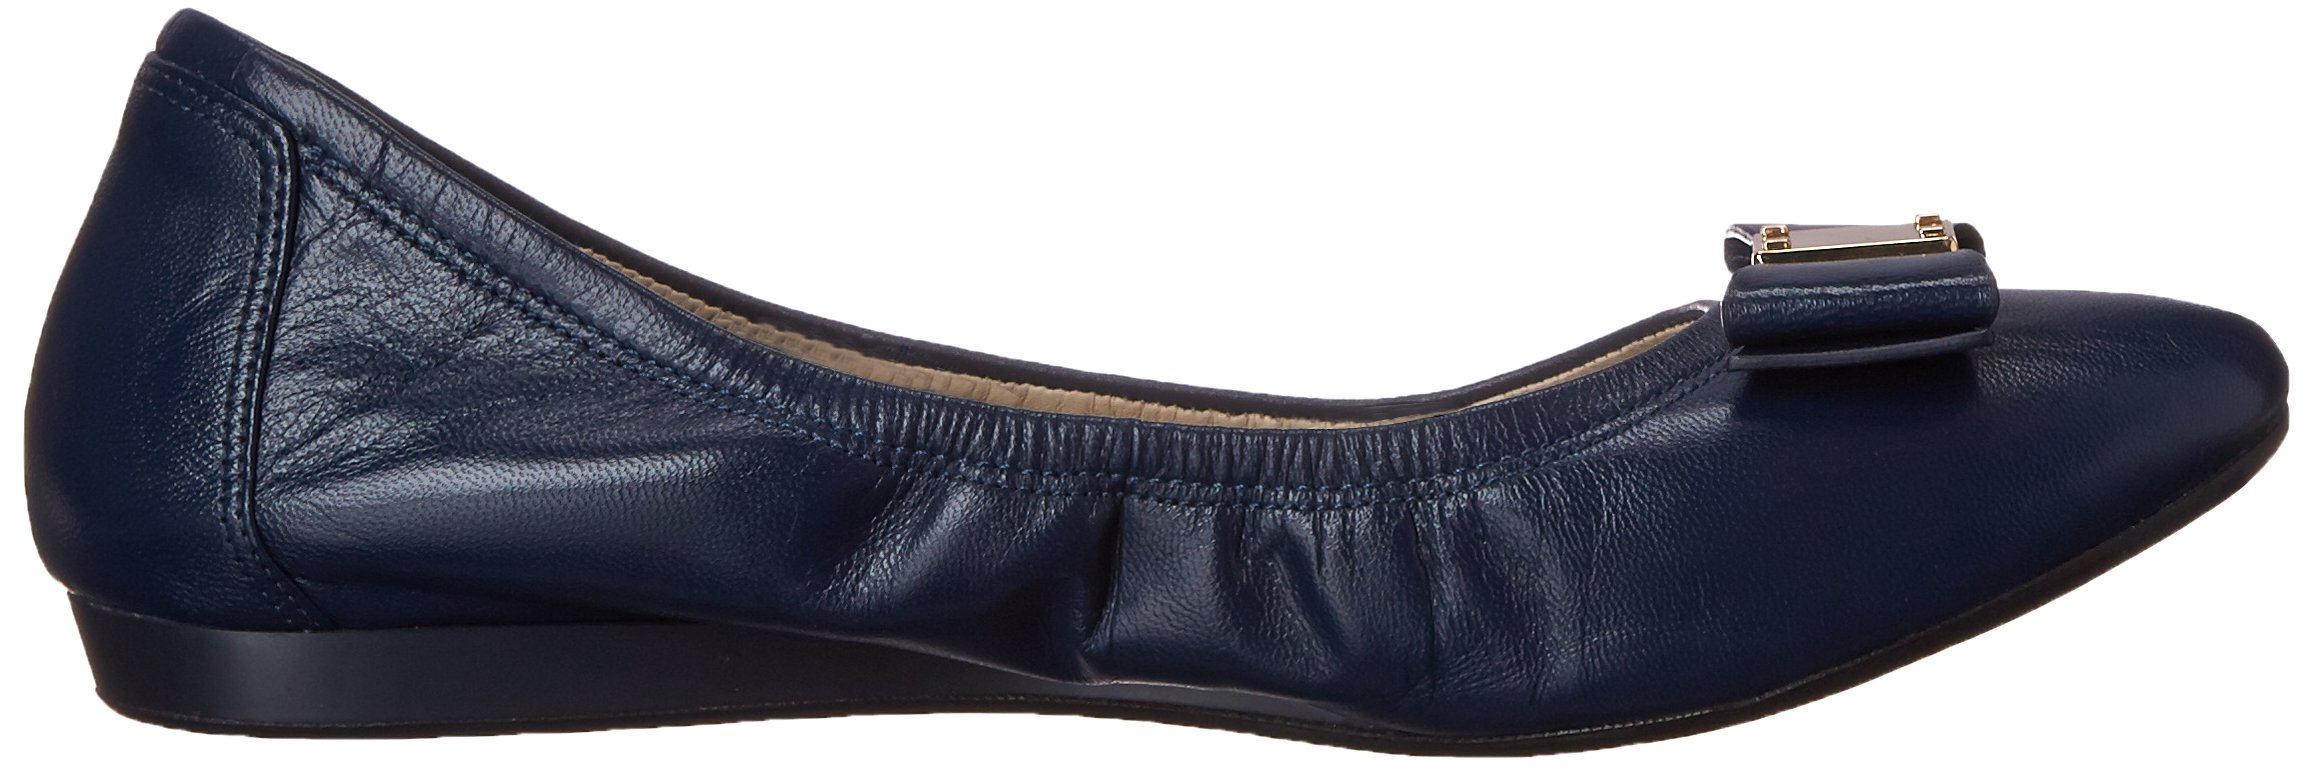 Cole Haan Women's Tali Bow Ballet Flat, Blazer Blue, 8 B US by Cole Haan (Image #7)